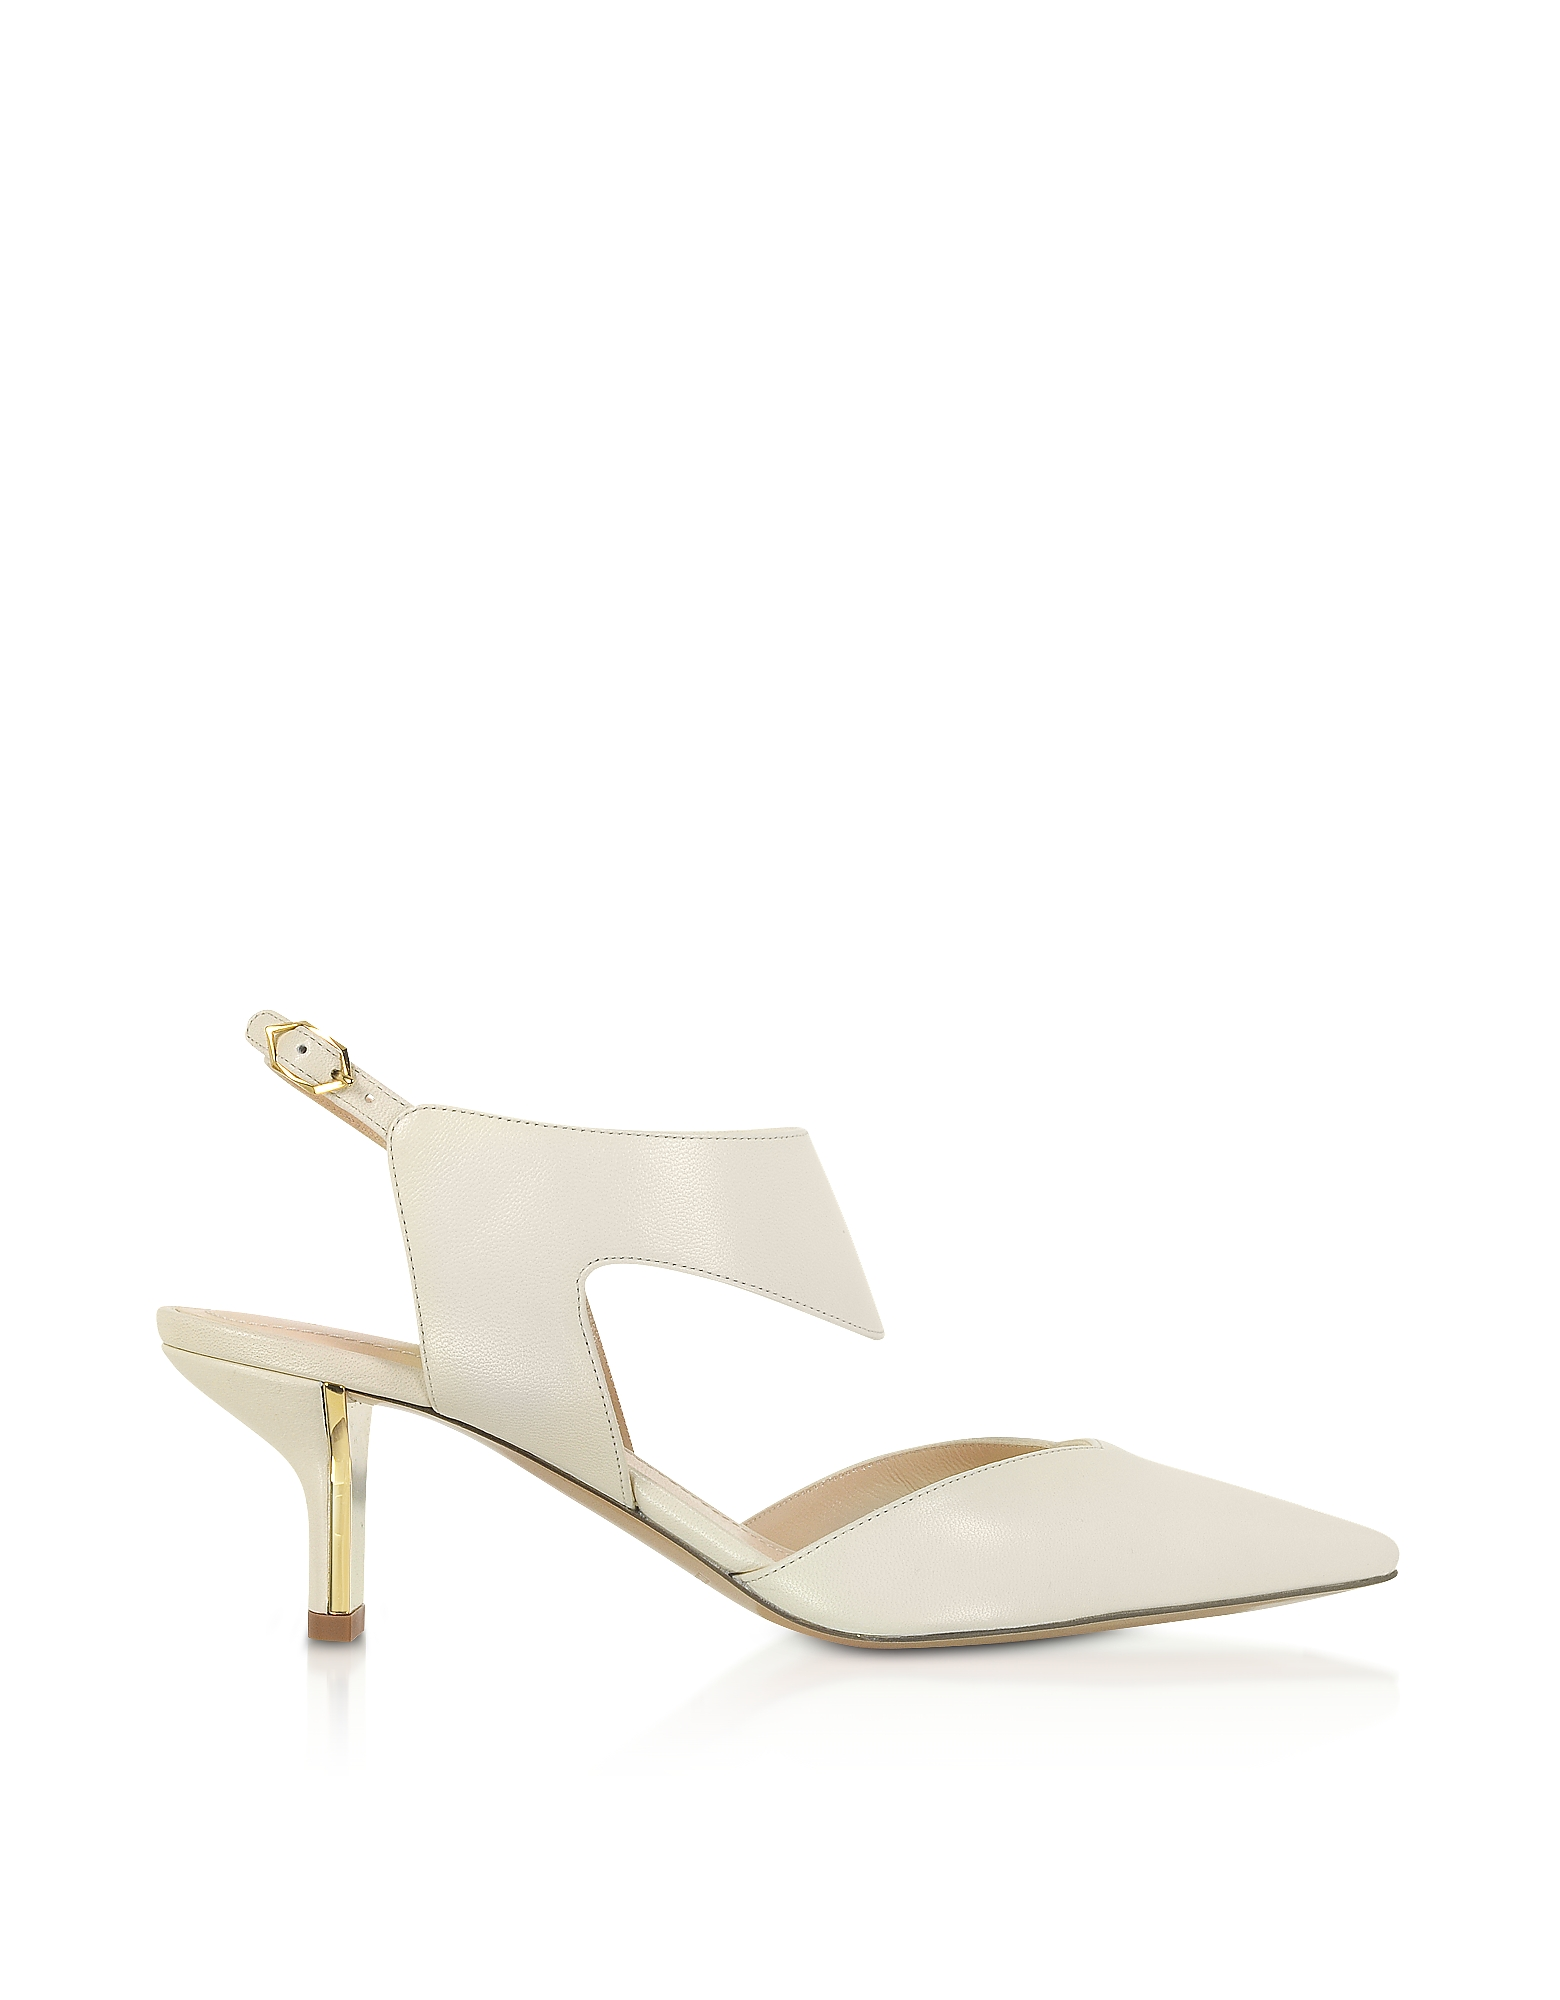 Nicholas Kirkwood Designer Shoes, Ecru 60mm Leeloo Sling Pumps